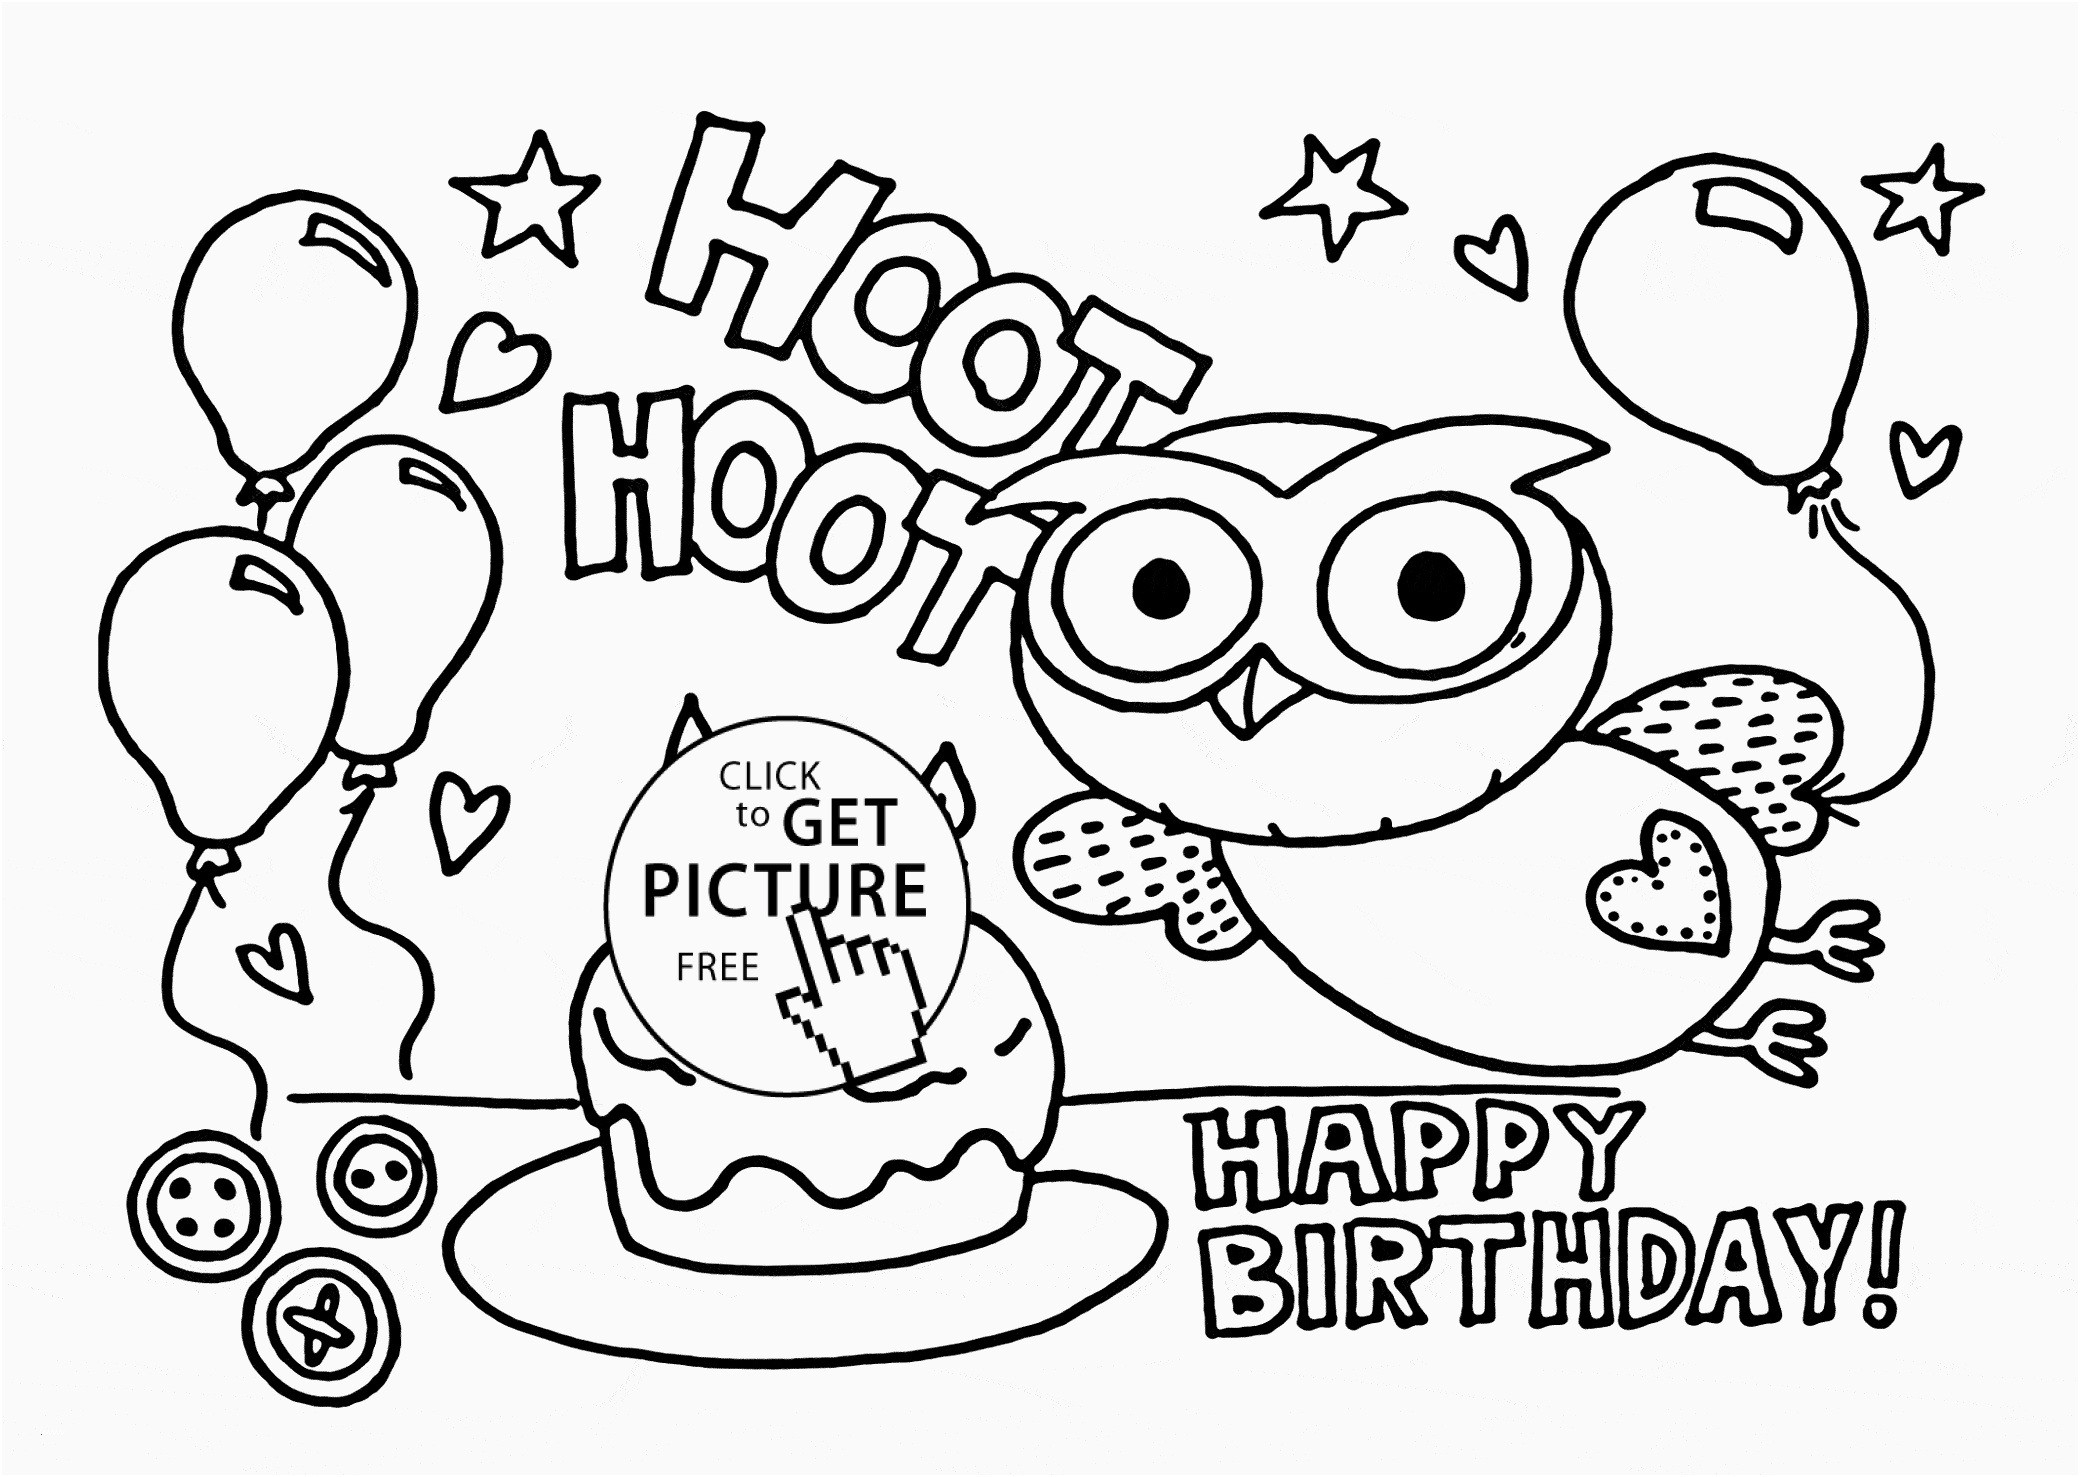 Happy Birthday Coloring Pages  Download 15r - To print for your project